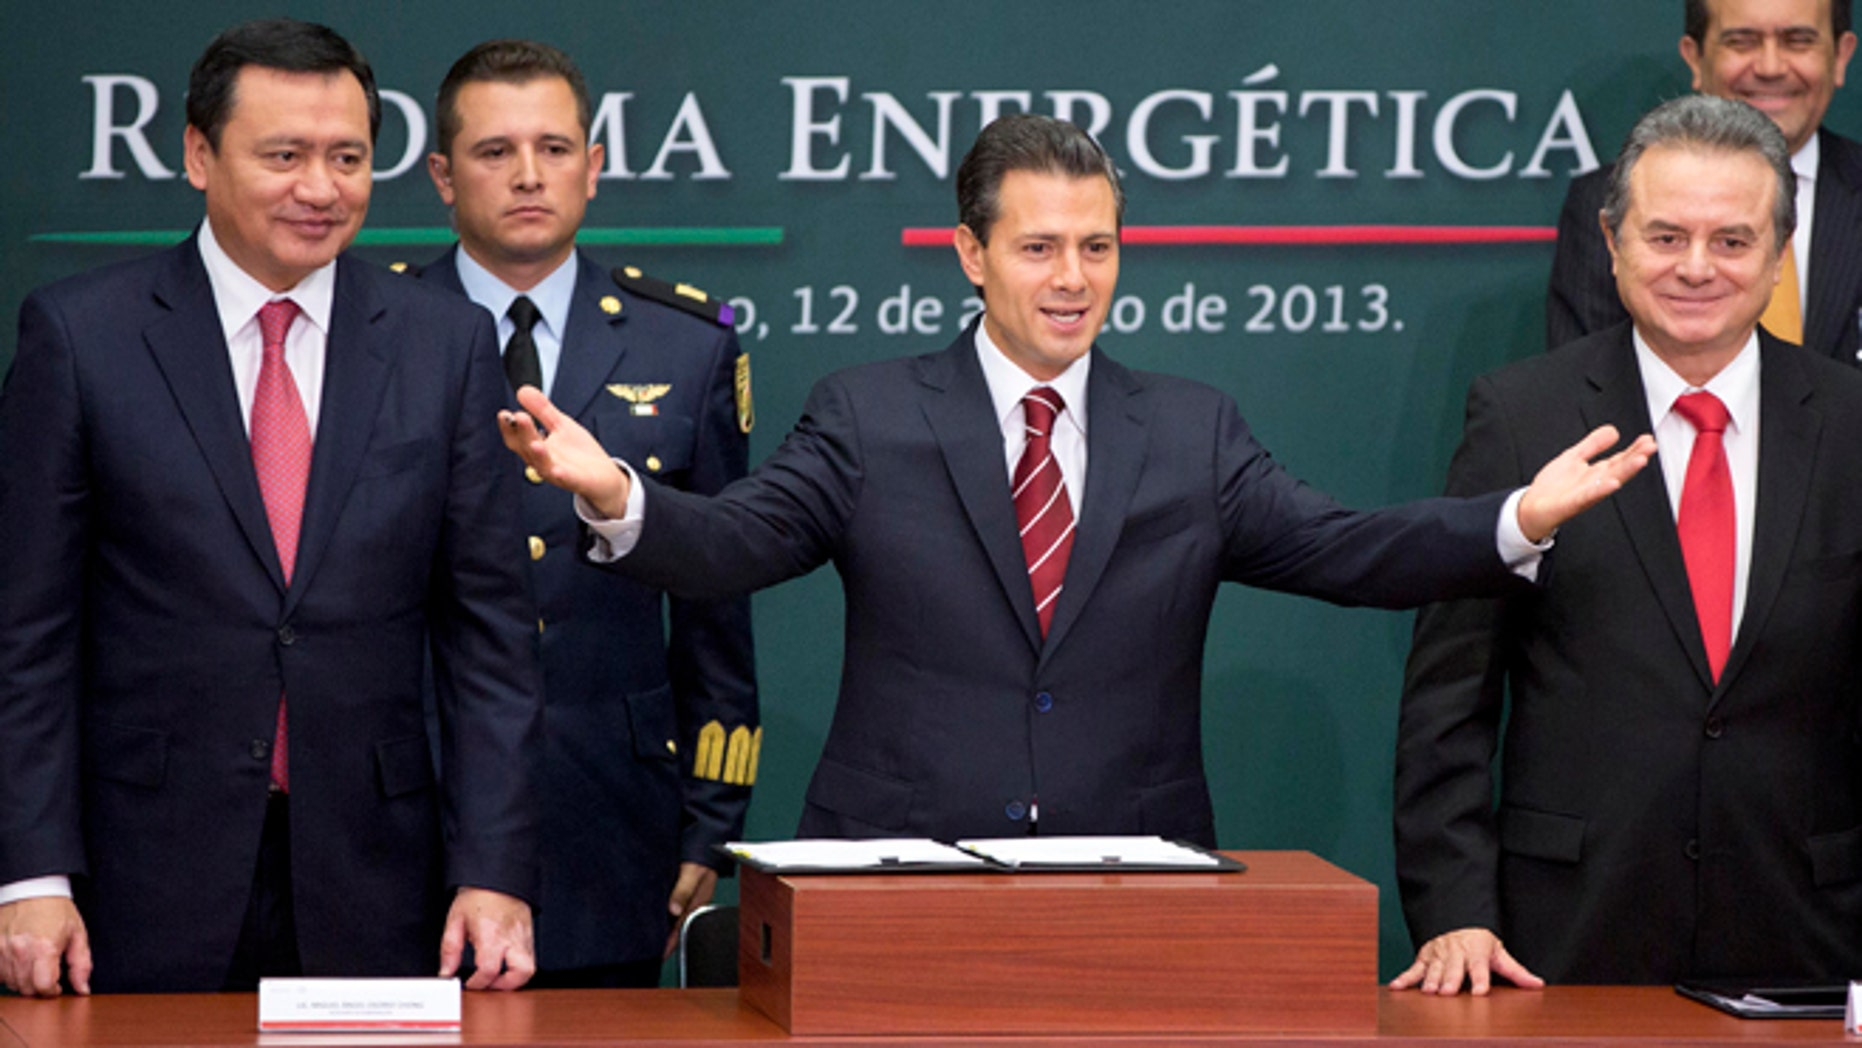 FILE - In this Aug. 12, 2013 file photo, Mexico's President Enrique Pena Nieto, center, greets the audience flanked by the Interior Secretary Miguel Angel Osorio Chong, left, and Energy Secretary Pedro Joaquin Coldwell during the ceremony to announce his proposal that would allow private firms to participate in the oil industry in Mexico City. Legislators from Mexicoâs two pro-energy reform political parties say they support constitutional changes to allow the government to grant licenses and share oil and profits with giants such as Exxon or Chevron. (AP Photo/Eduardo Verdugo, File)